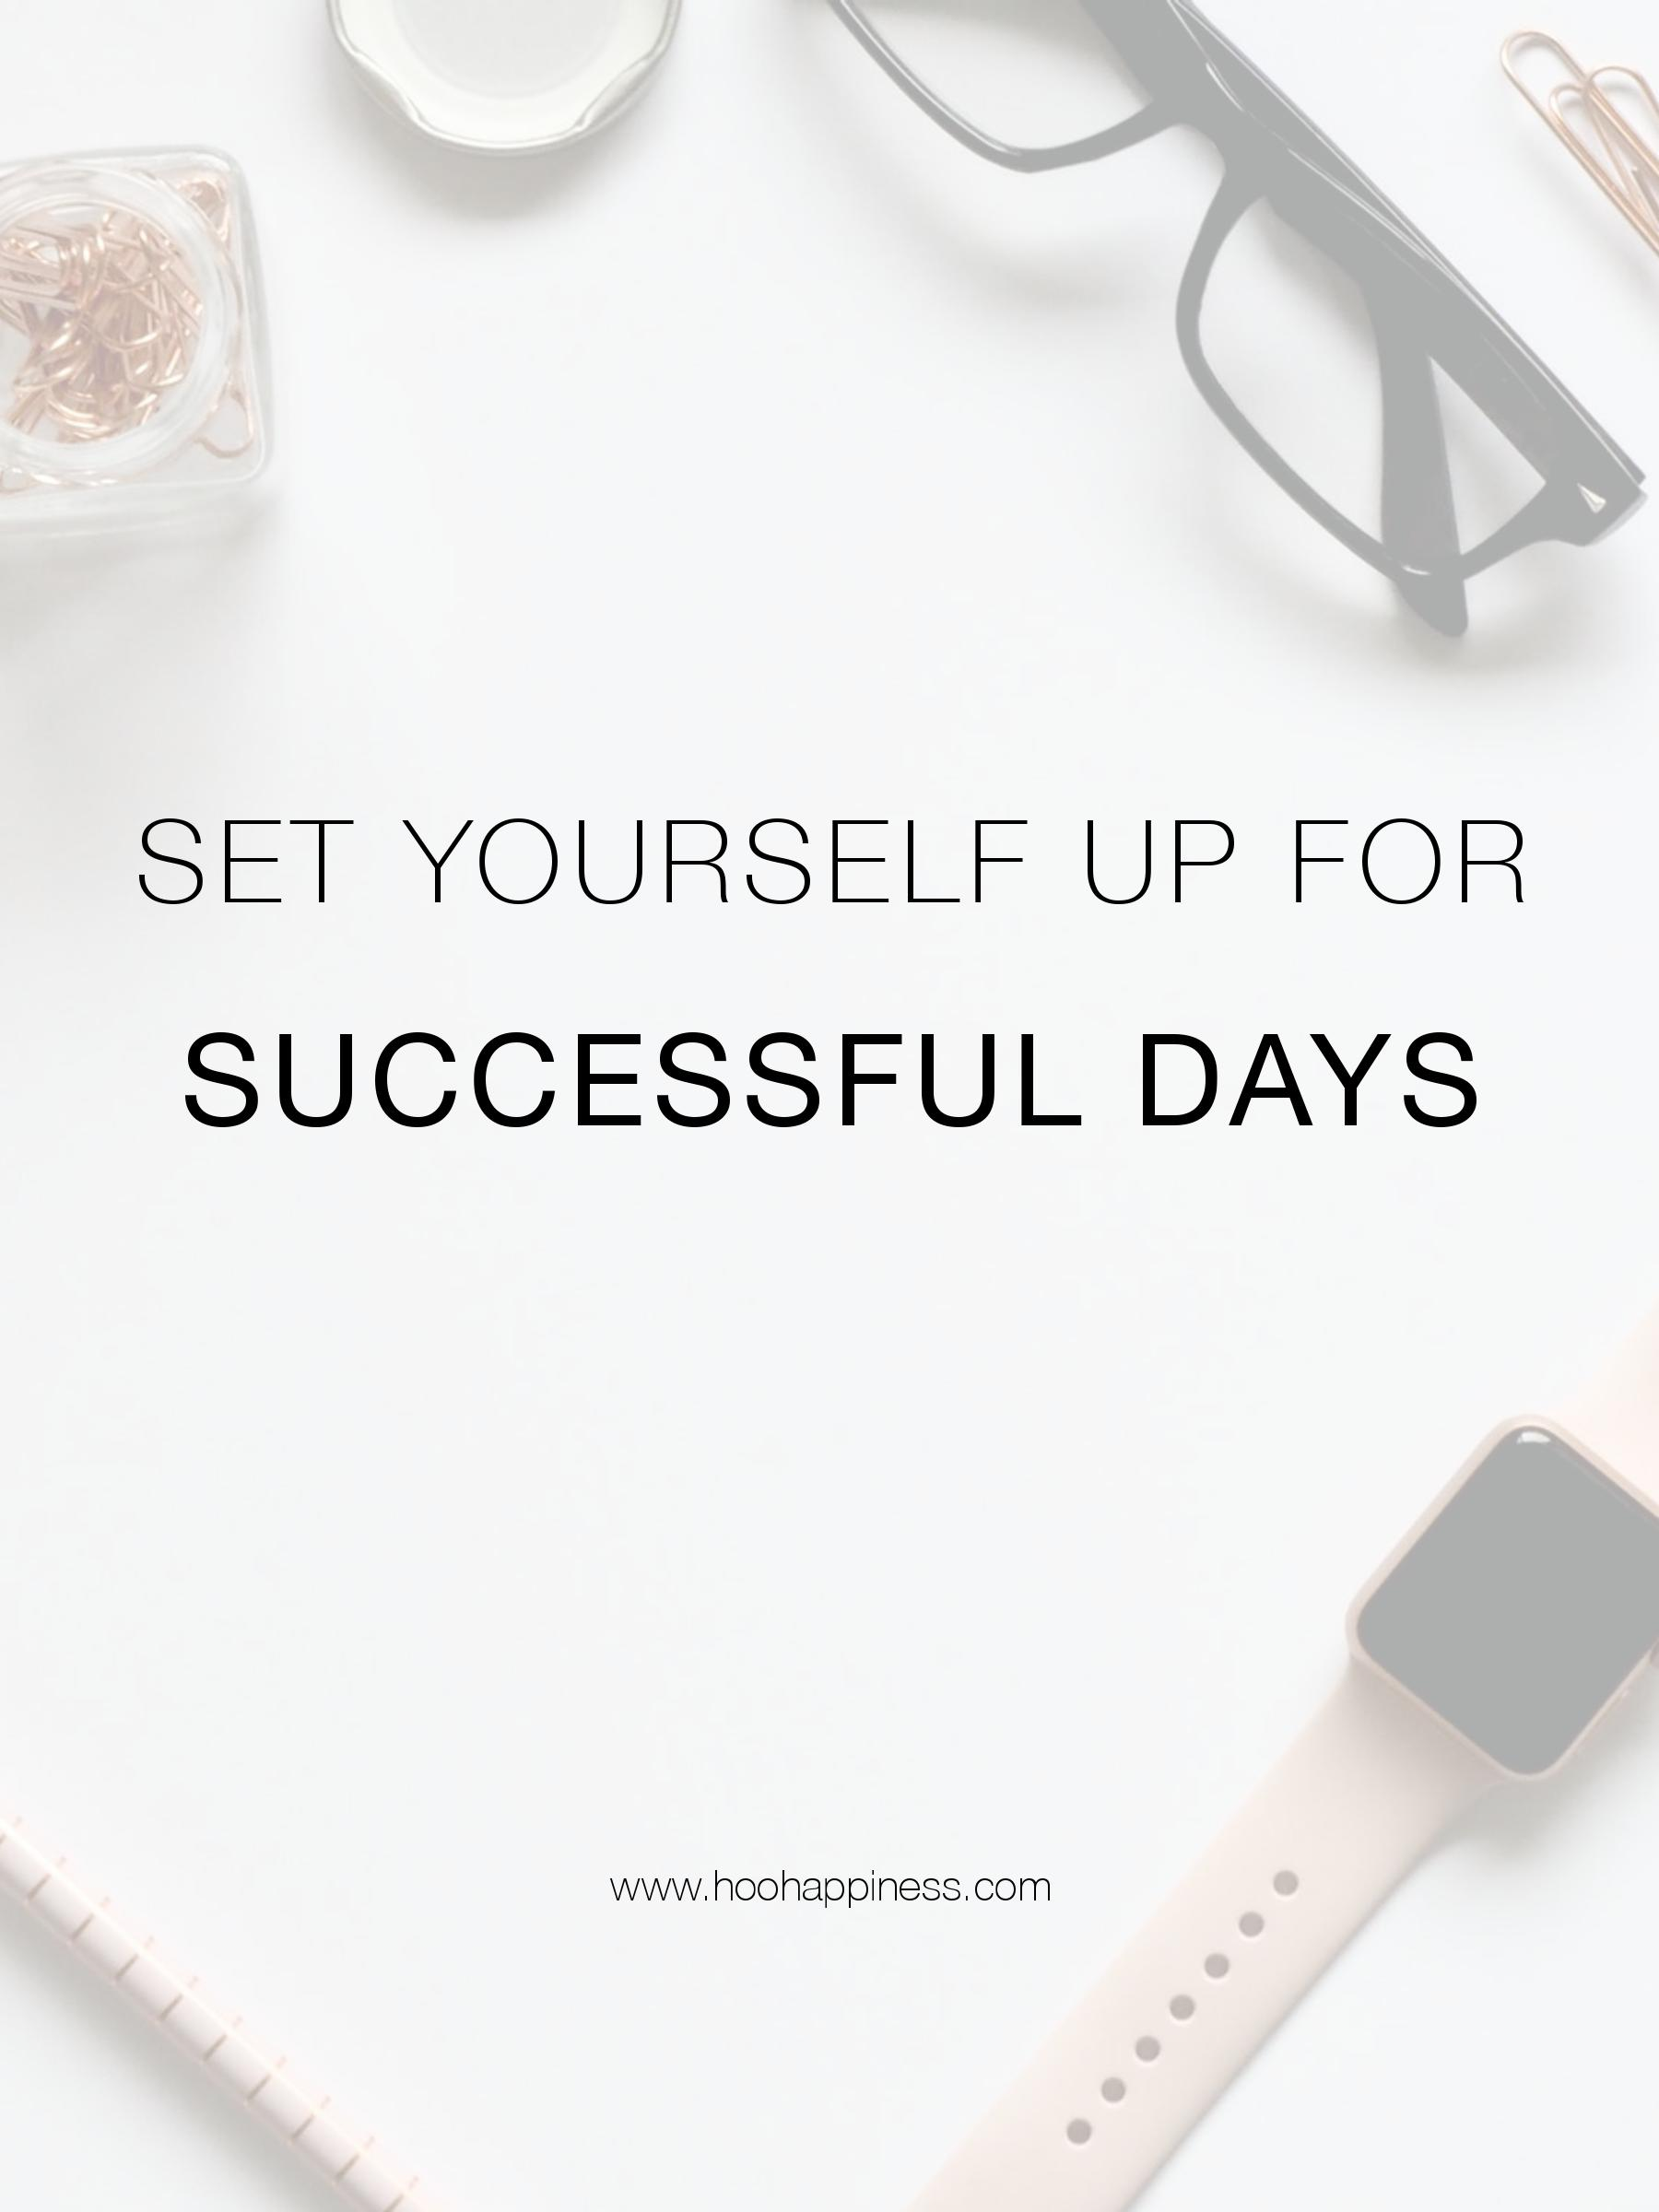 How to set yourself for successful days